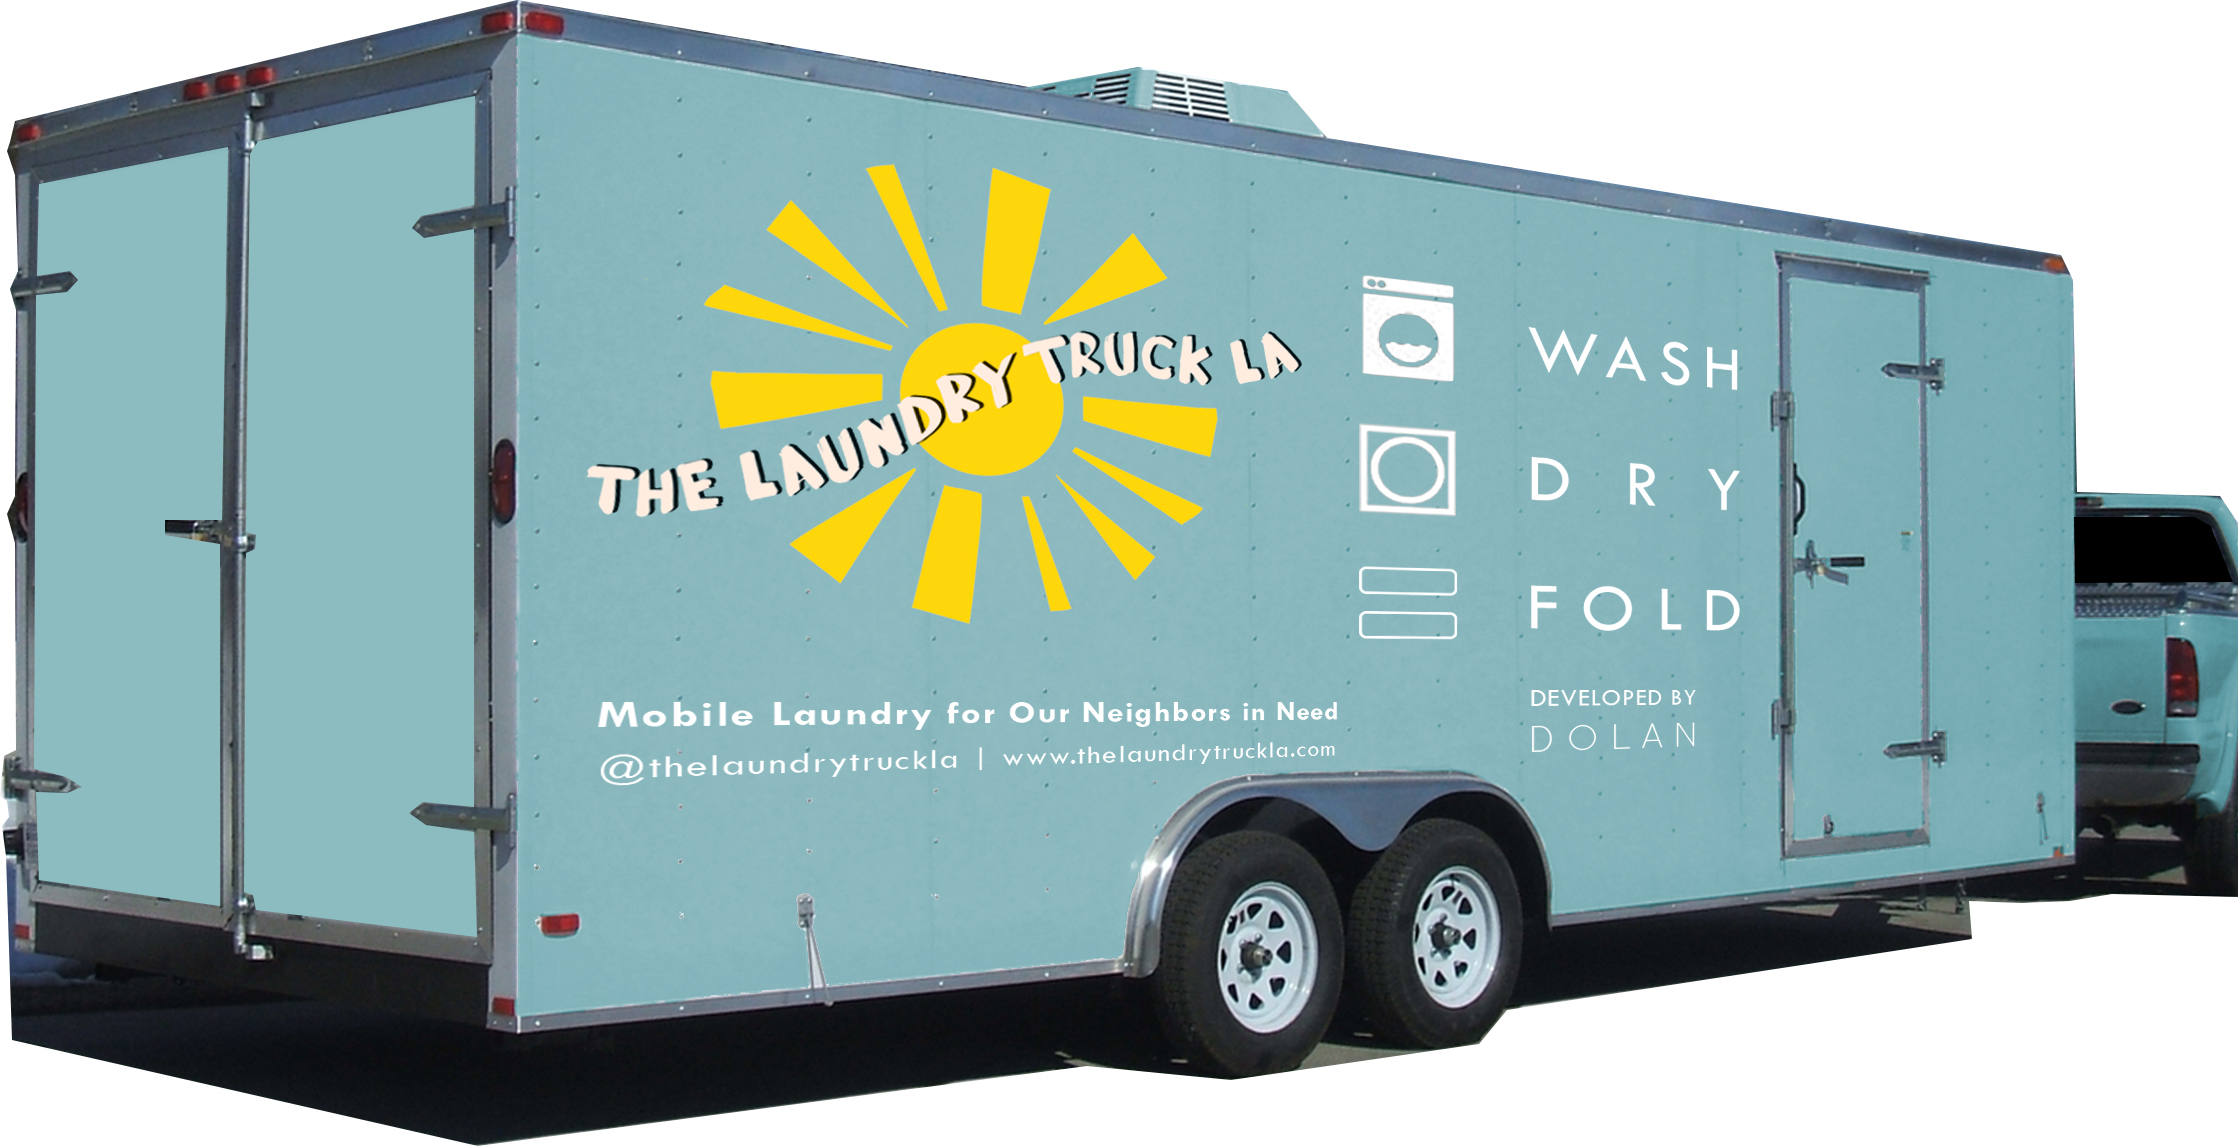 """""""Clorox Backs Homeless Effort"""" - Los Angeles Business Journal covers The Laundry Truck LA's $30,000 sponsorship by Clorox Co."""